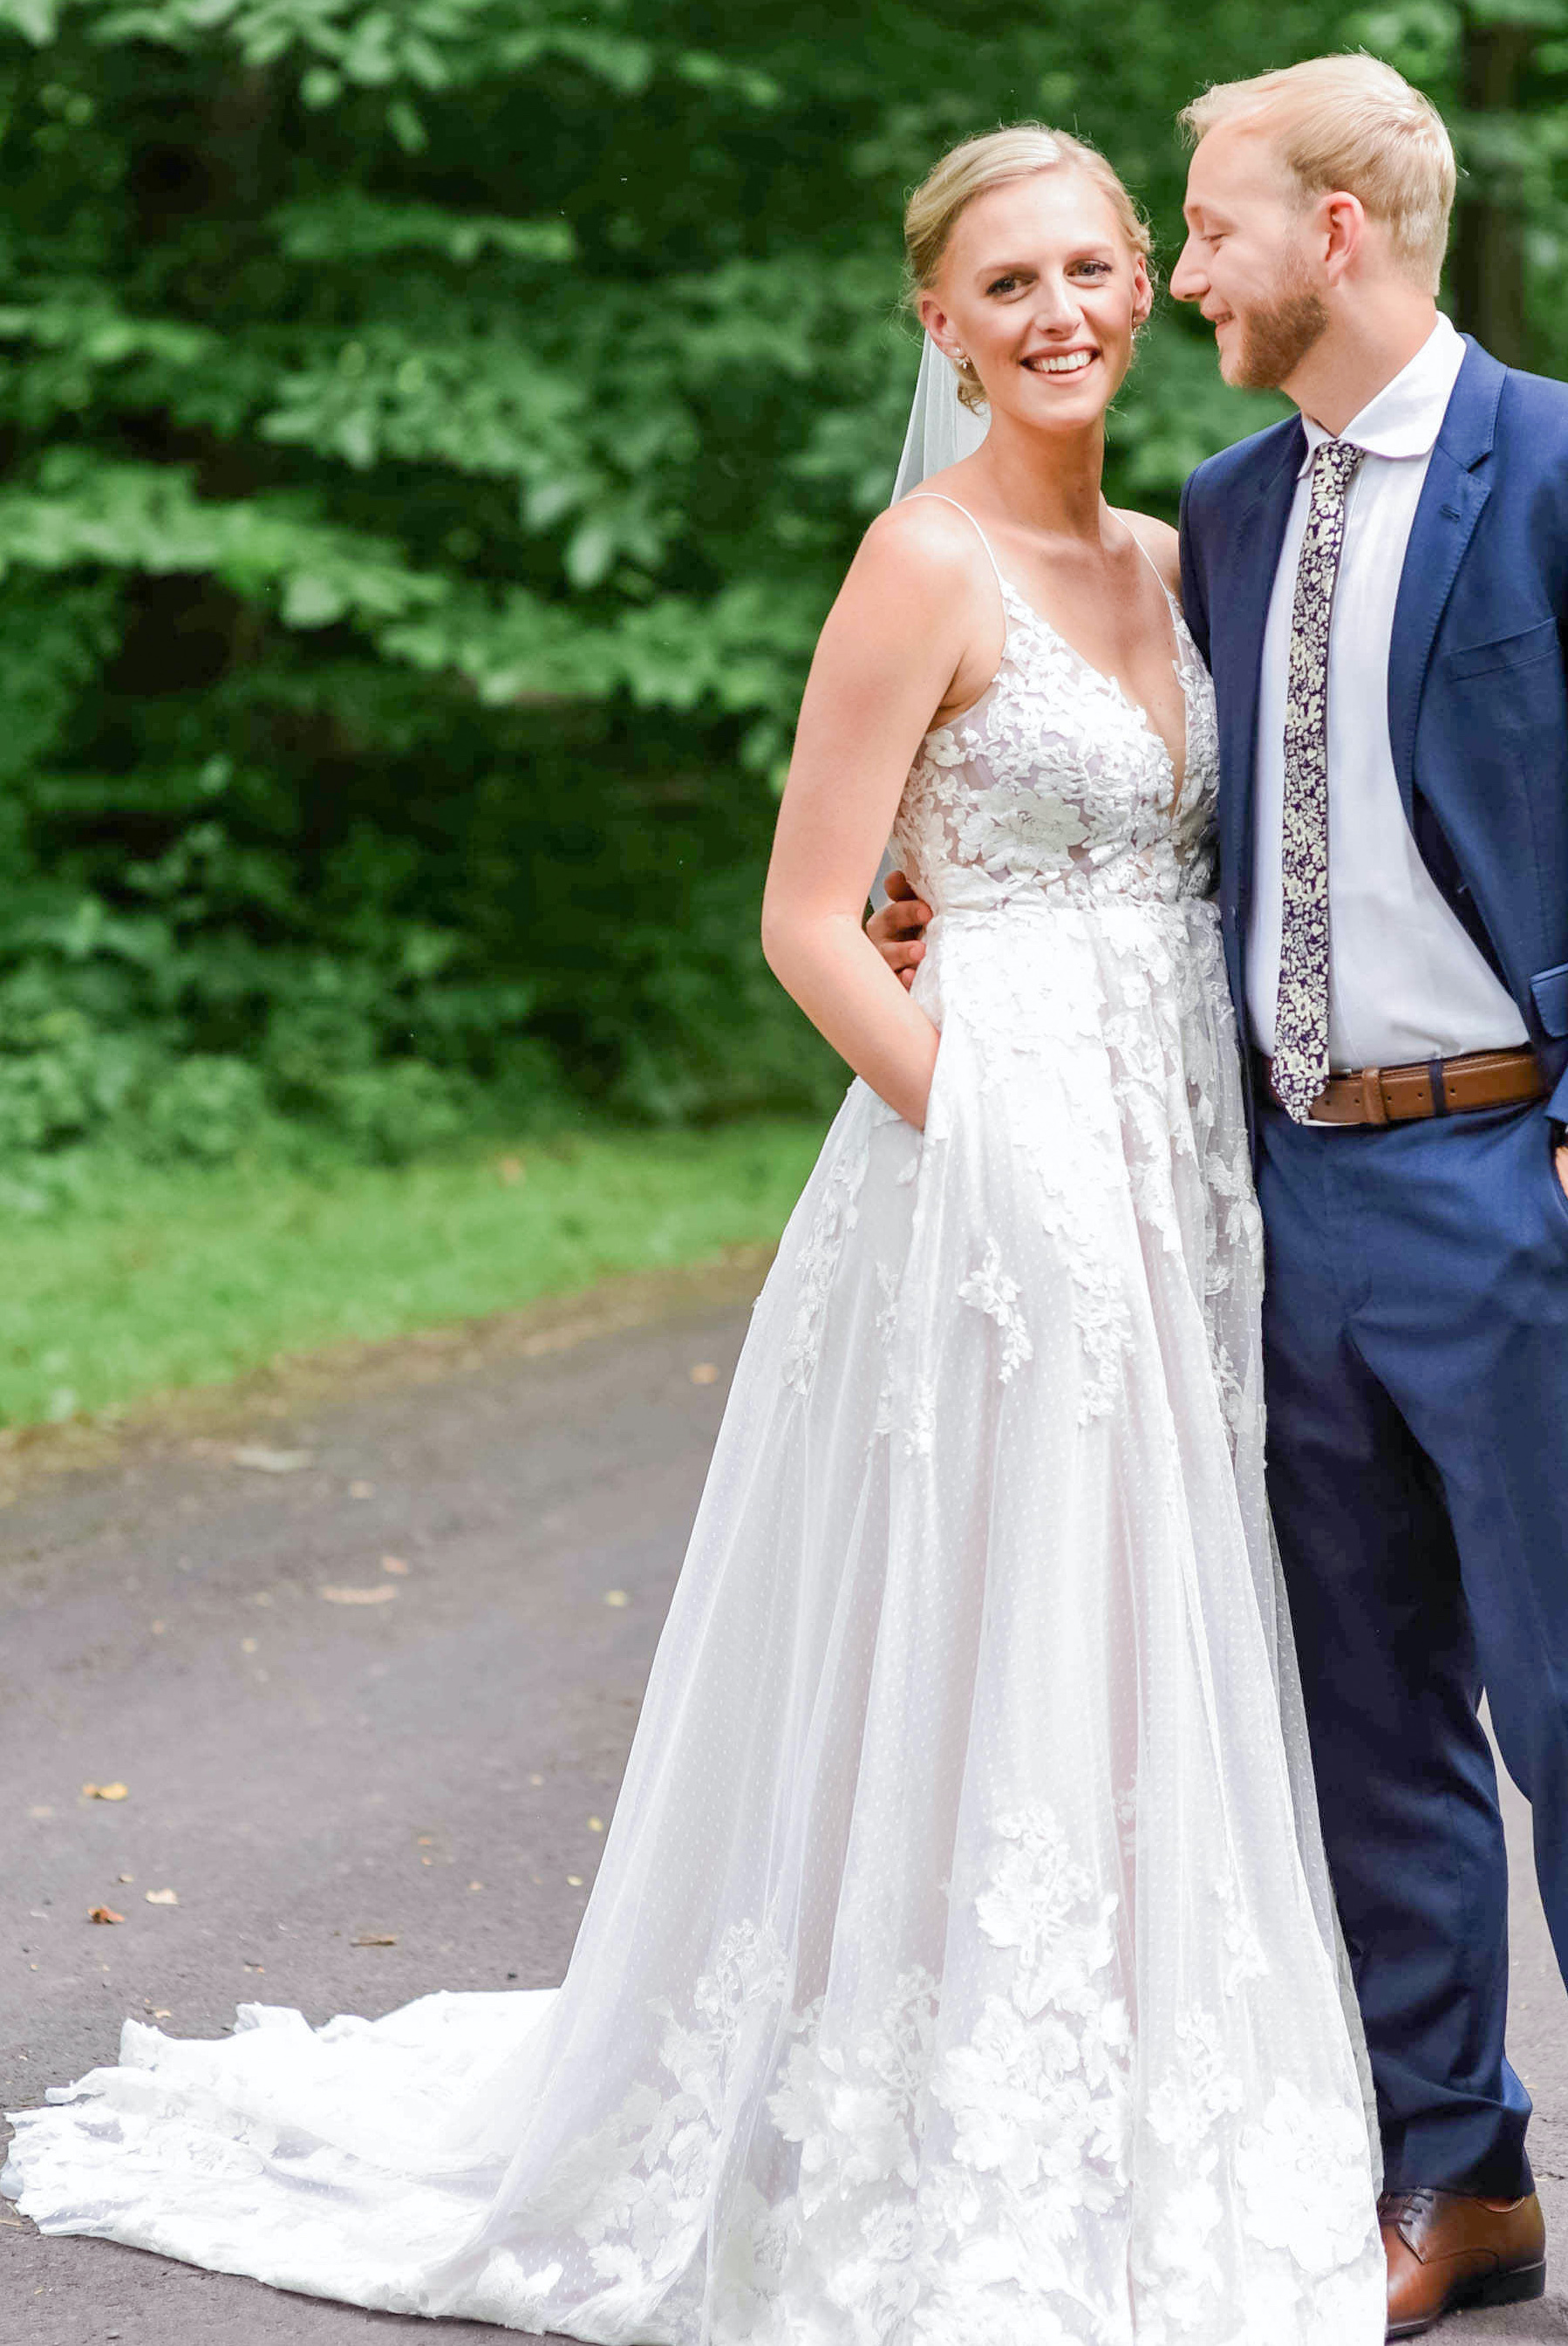 Bride customized her wedding dress with Anomalie Online Wedding Dresses with purple fabric and pockets.